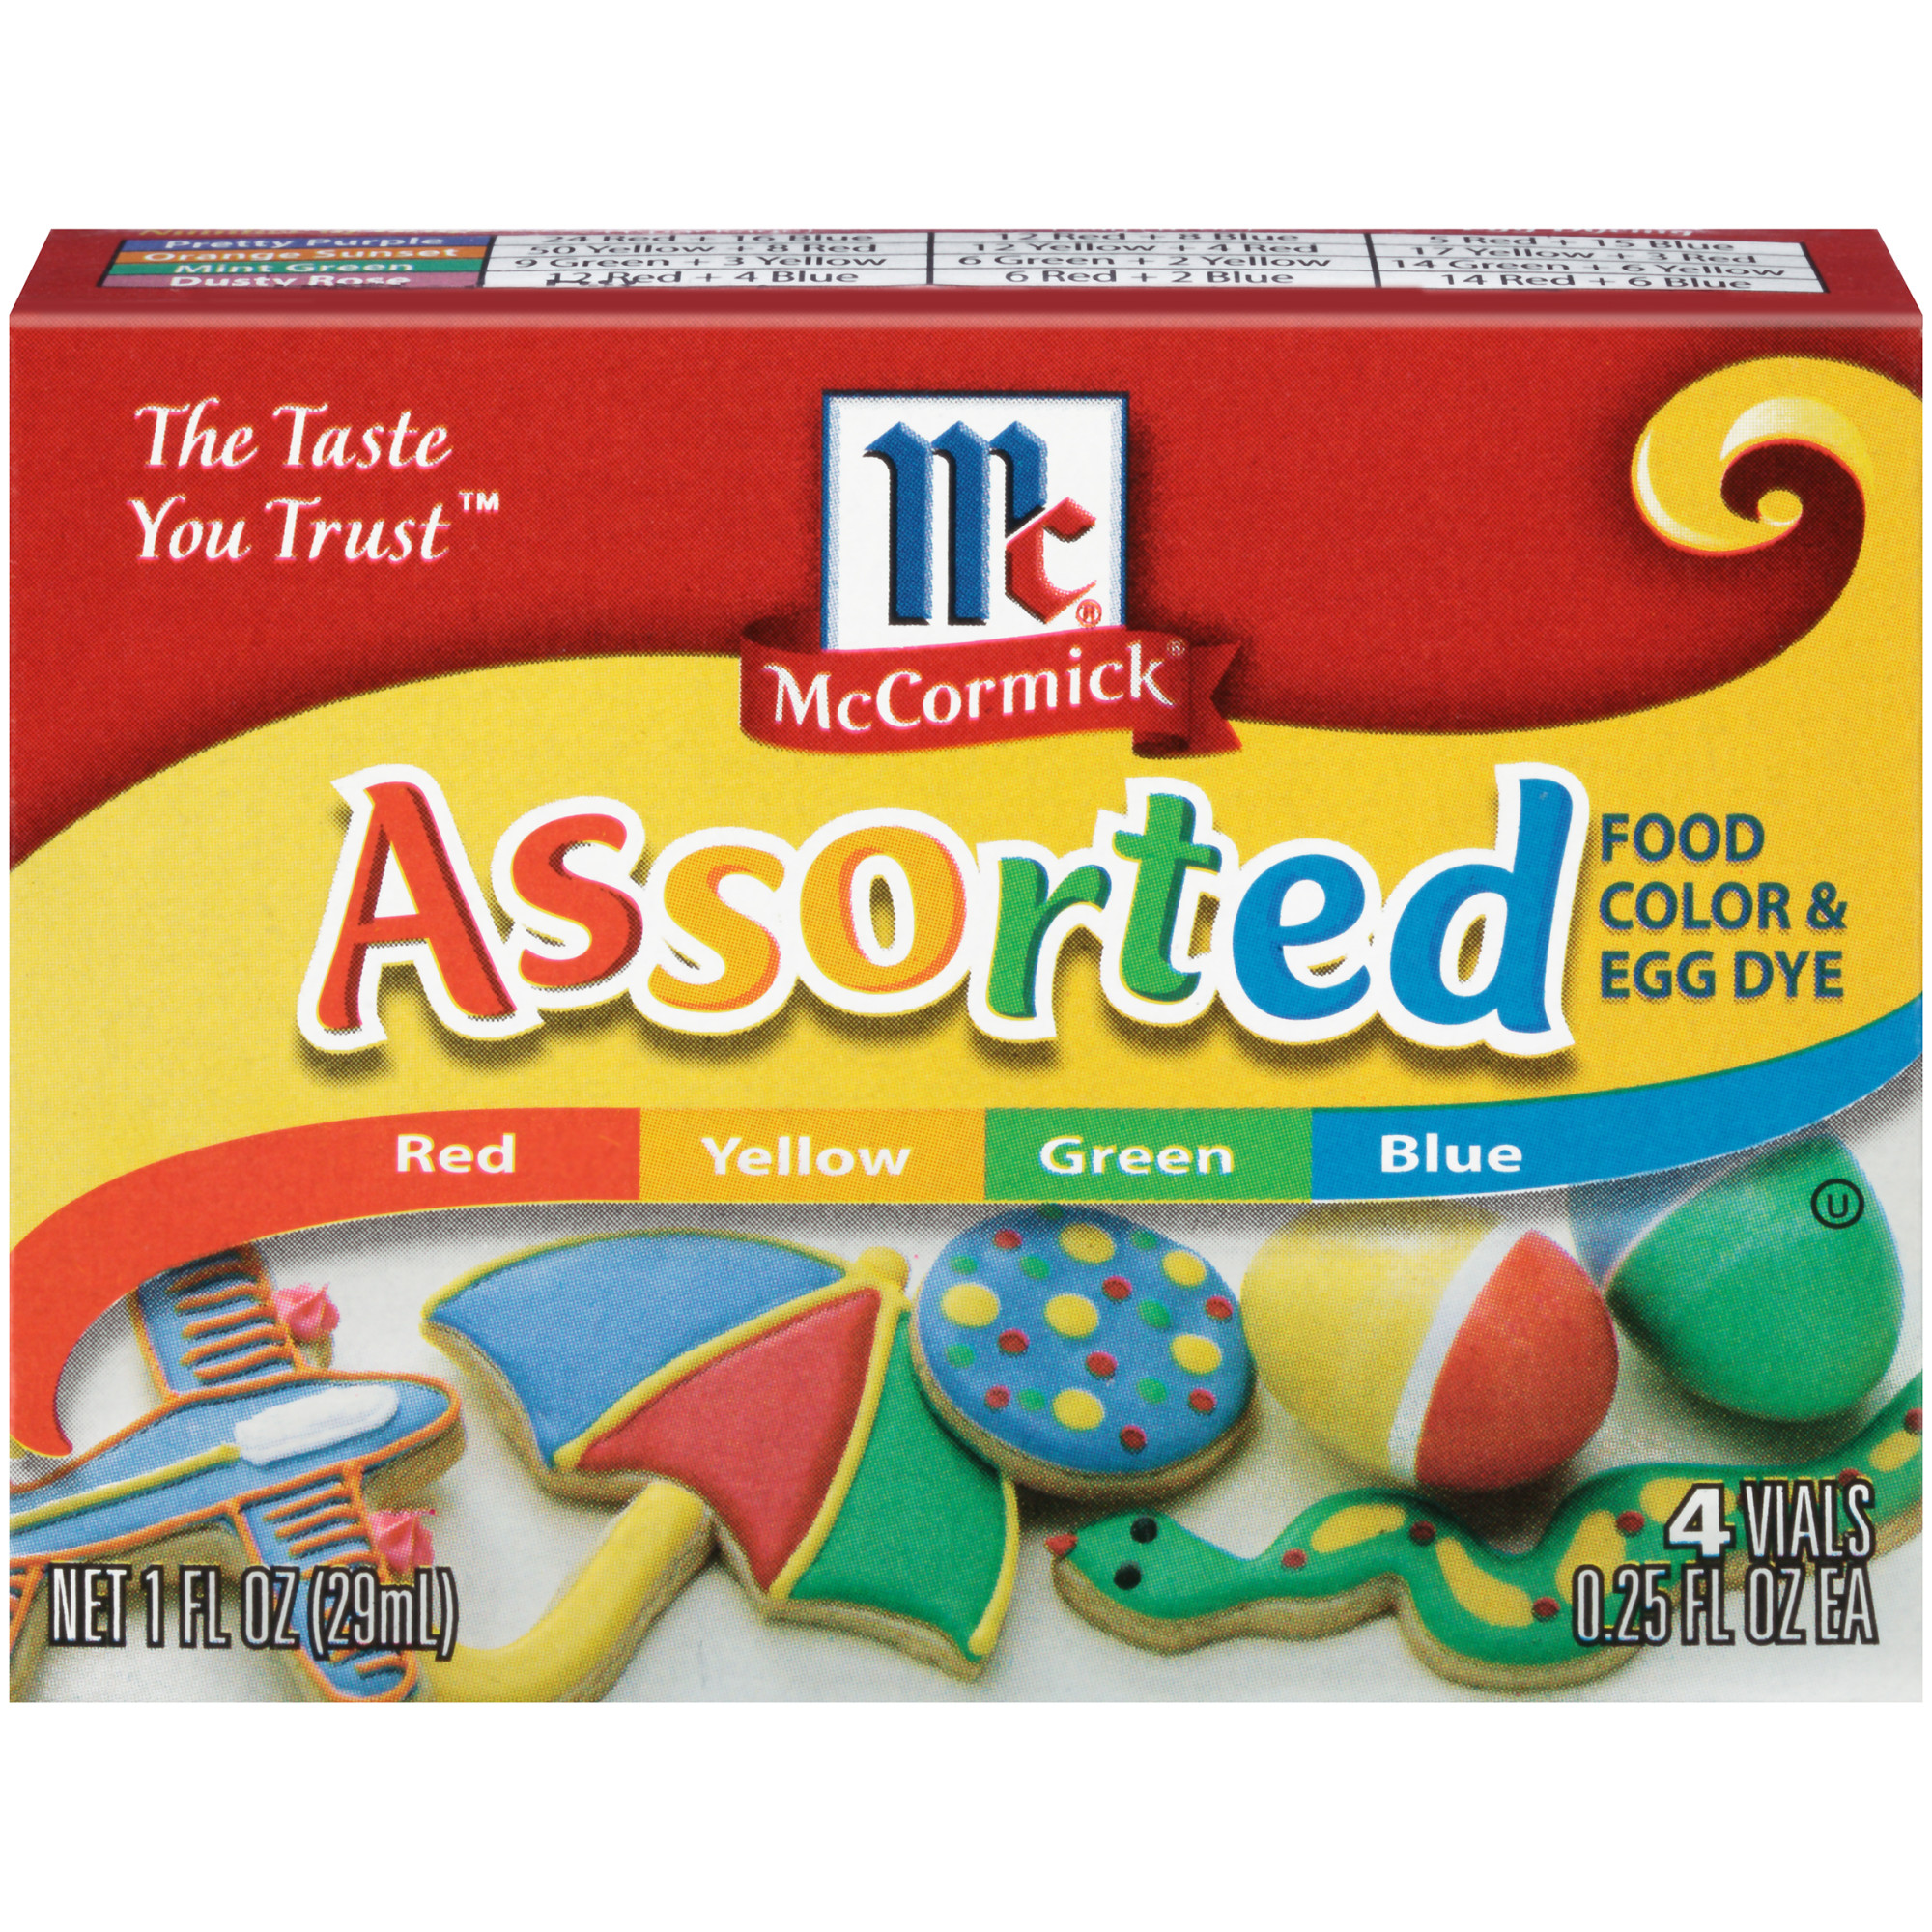 McCormick Assorted Food Color & Egg Dye, 1 fl oz - Walmart.com